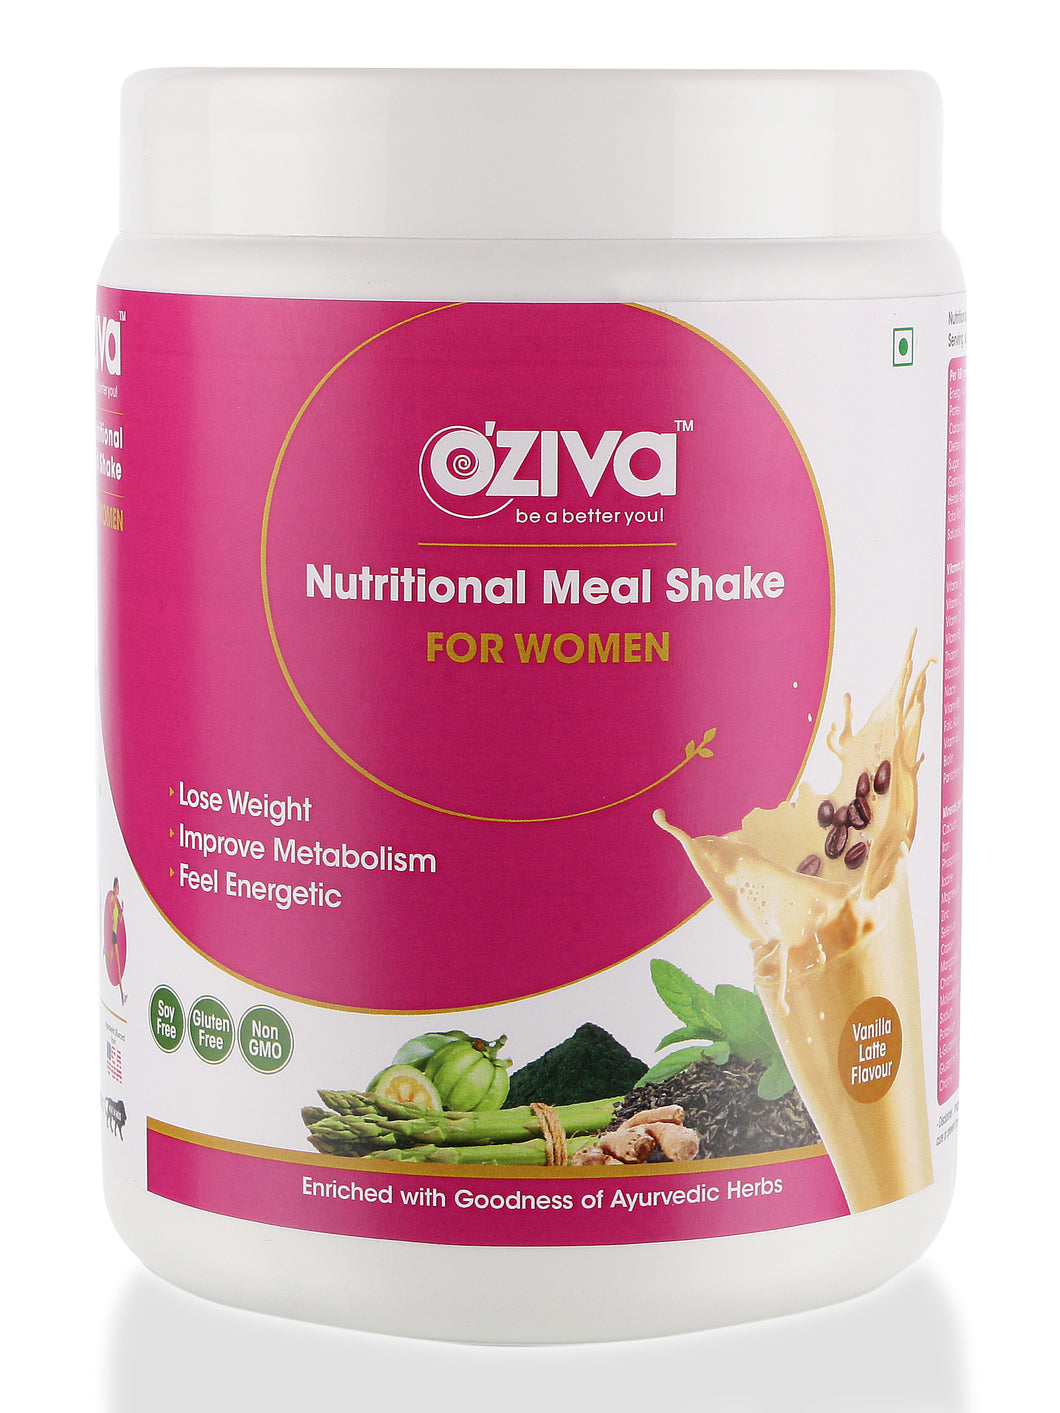 OZiva Nutritional Meal Shake, Women - Vanilla Latte, High Protein & High Fiber Meal Replacement Shake ( Soy Free, Gluten Free, No Preservatives )